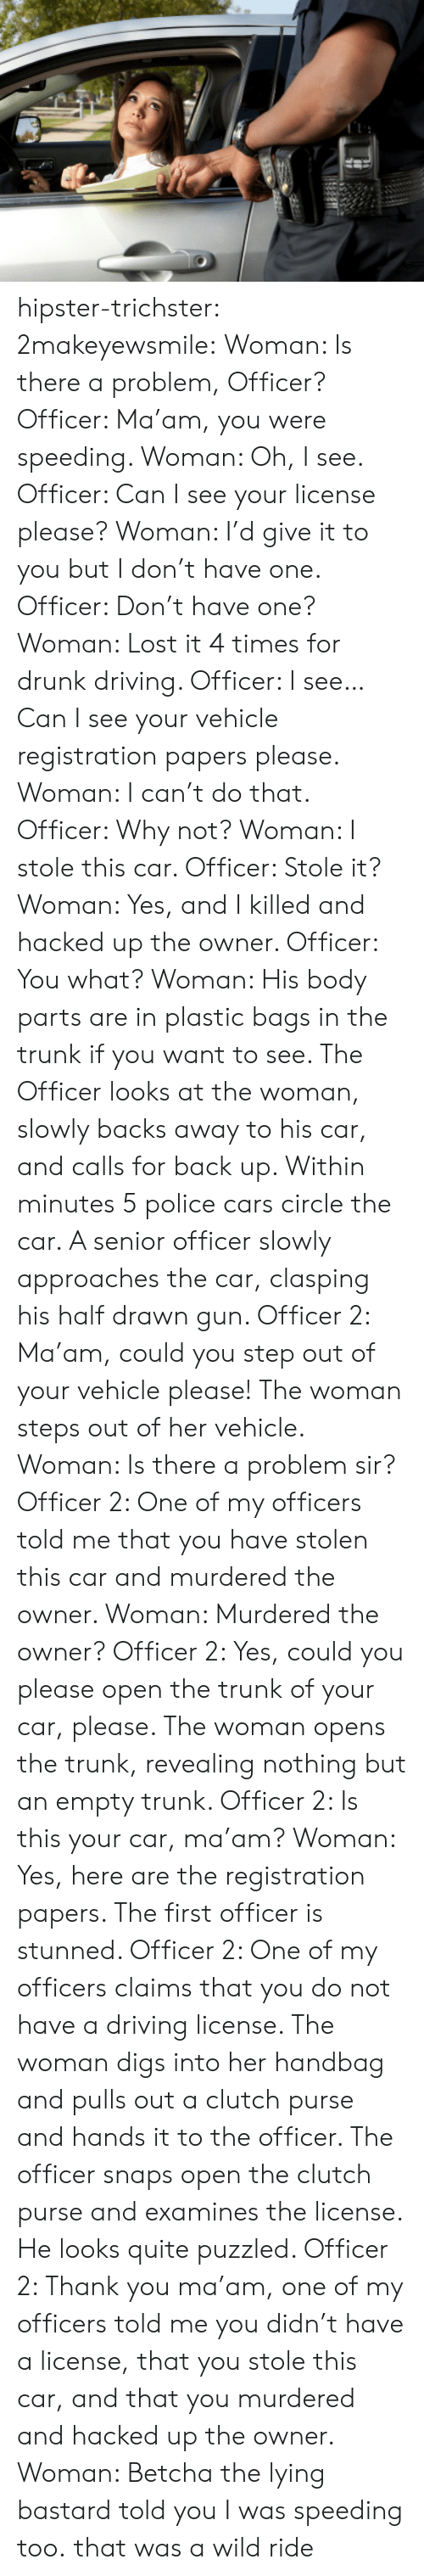 Wild Ride: hipster-trichster:  2makeyewsmile:  Woman: Is there a problem, Officer? Officer: Ma'am, you were speeding. Woman: Oh, I see. Officer: Can I see your license please? Woman: I'd give it to you but I don't have one.  Officer: Don't have one? Woman: Lost it 4 times for drunk driving. Officer: I see…Can I see your vehicle registration papers please. Woman: I can't do that. Officer: Why not? Woman: I stole this car. Officer: Stole it? Woman: Yes, and I killed and hacked up the owner. Officer: You what? Woman: His body parts are in plastic bags in the trunk if you want to see. The Officer looks at the woman, slowly backs away to his car, and calls for back up. Within minutes 5 police cars circle the car. A senior officer slowly approaches the car, clasping his half drawn gun. Officer 2: Ma'am, could you step out of your vehicle please! The woman steps out of her vehicle. Woman: Is there a problem sir? Officer 2: One of my officers told me that you have stolen this car and murdered the owner. Woman: Murdered the owner? Officer 2: Yes, could you please open the trunk of your car, please. The woman opens the trunk, revealing nothing but an empty trunk. Officer 2: Is this your car, ma'am? Woman: Yes, here are the registration papers. The first officer is stunned. Officer 2: One of my officers claims that you do not have a driving license. The woman digs into her handbag and pulls out a clutch purse and hands it to the officer. The officer snaps open the clutch purse and examines the license. He looks quite puzzled. Officer 2: Thank you ma'am, one of my officers told me you didn't have a license, that you stole this car, and that you murdered and hacked up the owner. Woman: Betcha the lying bastard told you I was speeding too.  that was a wild ride